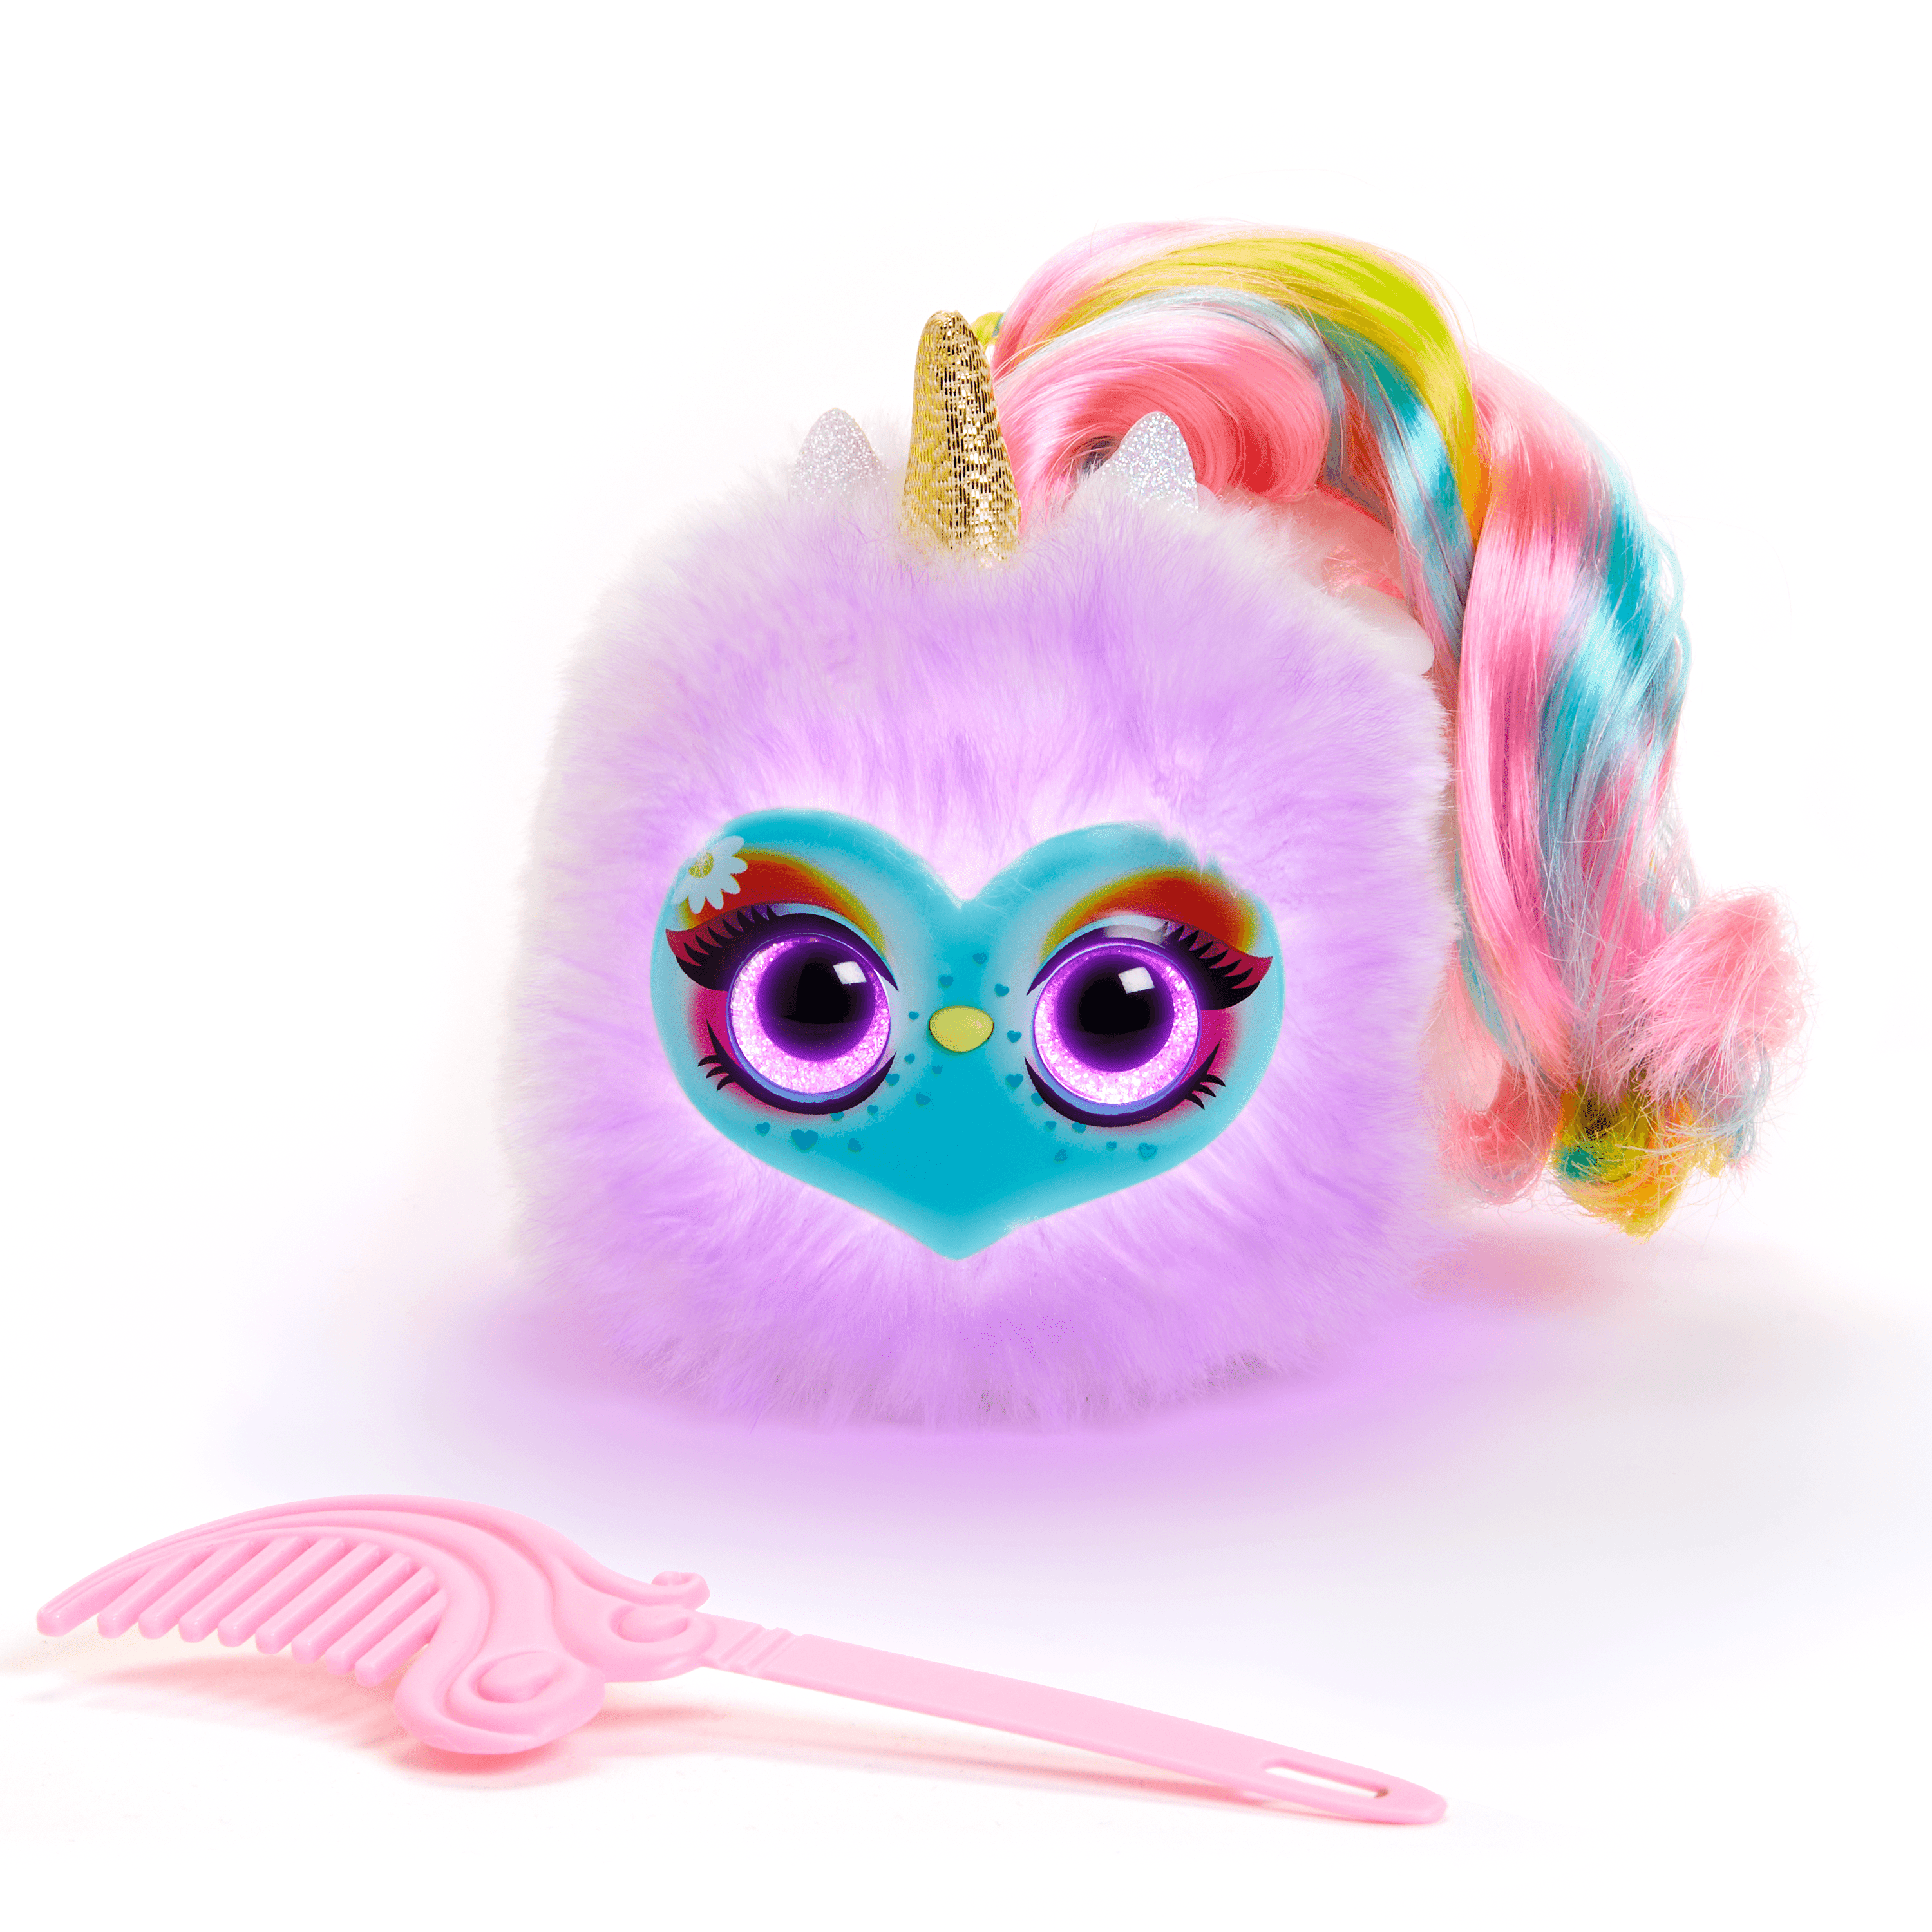 Pomsies Lumies Sparkle Rush - Interactive Electronic Plush